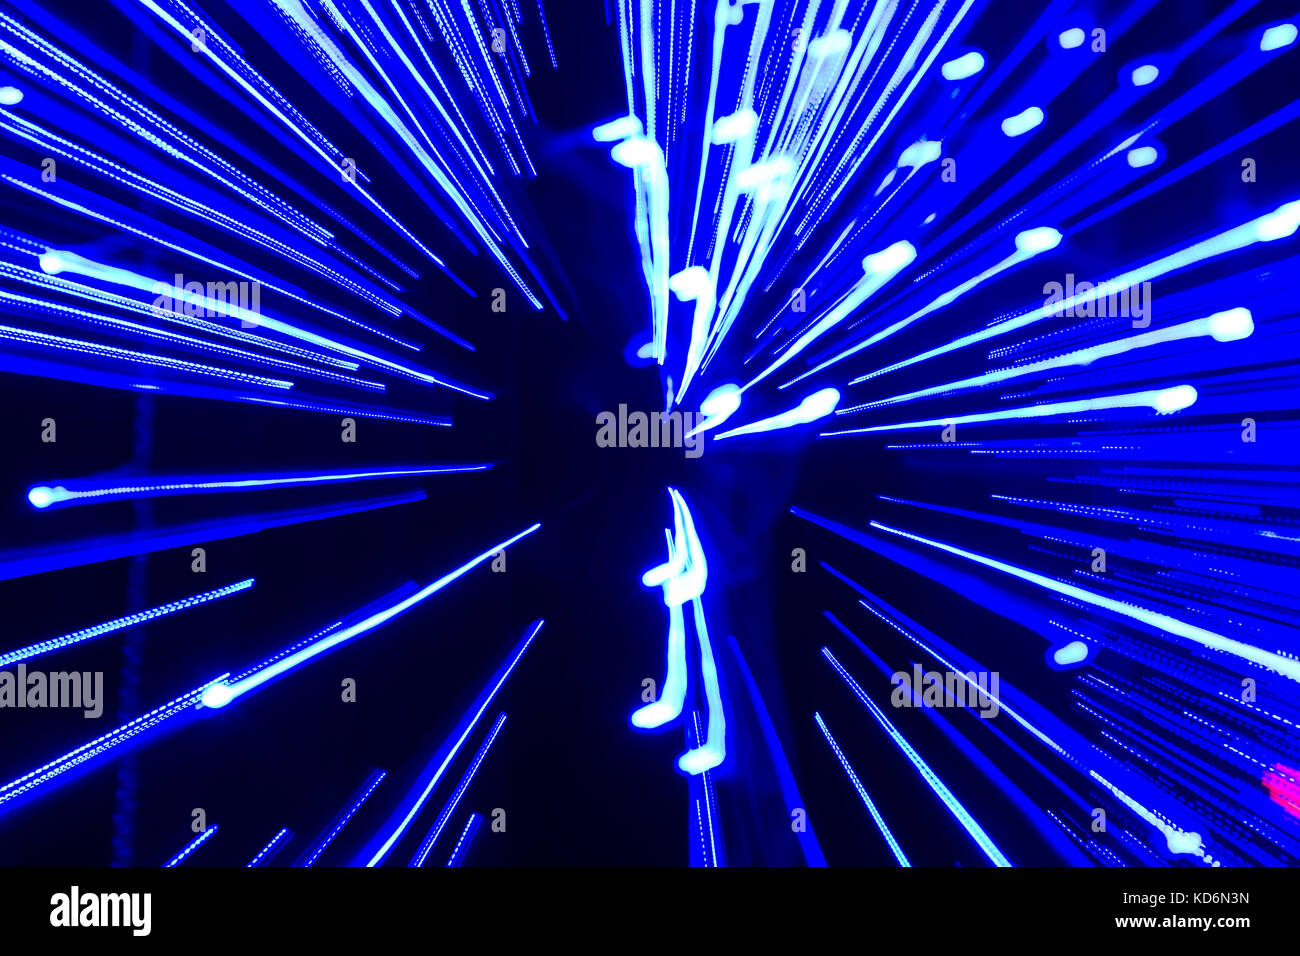 Speed of light - blue traces from points of light in space. - Stock Image